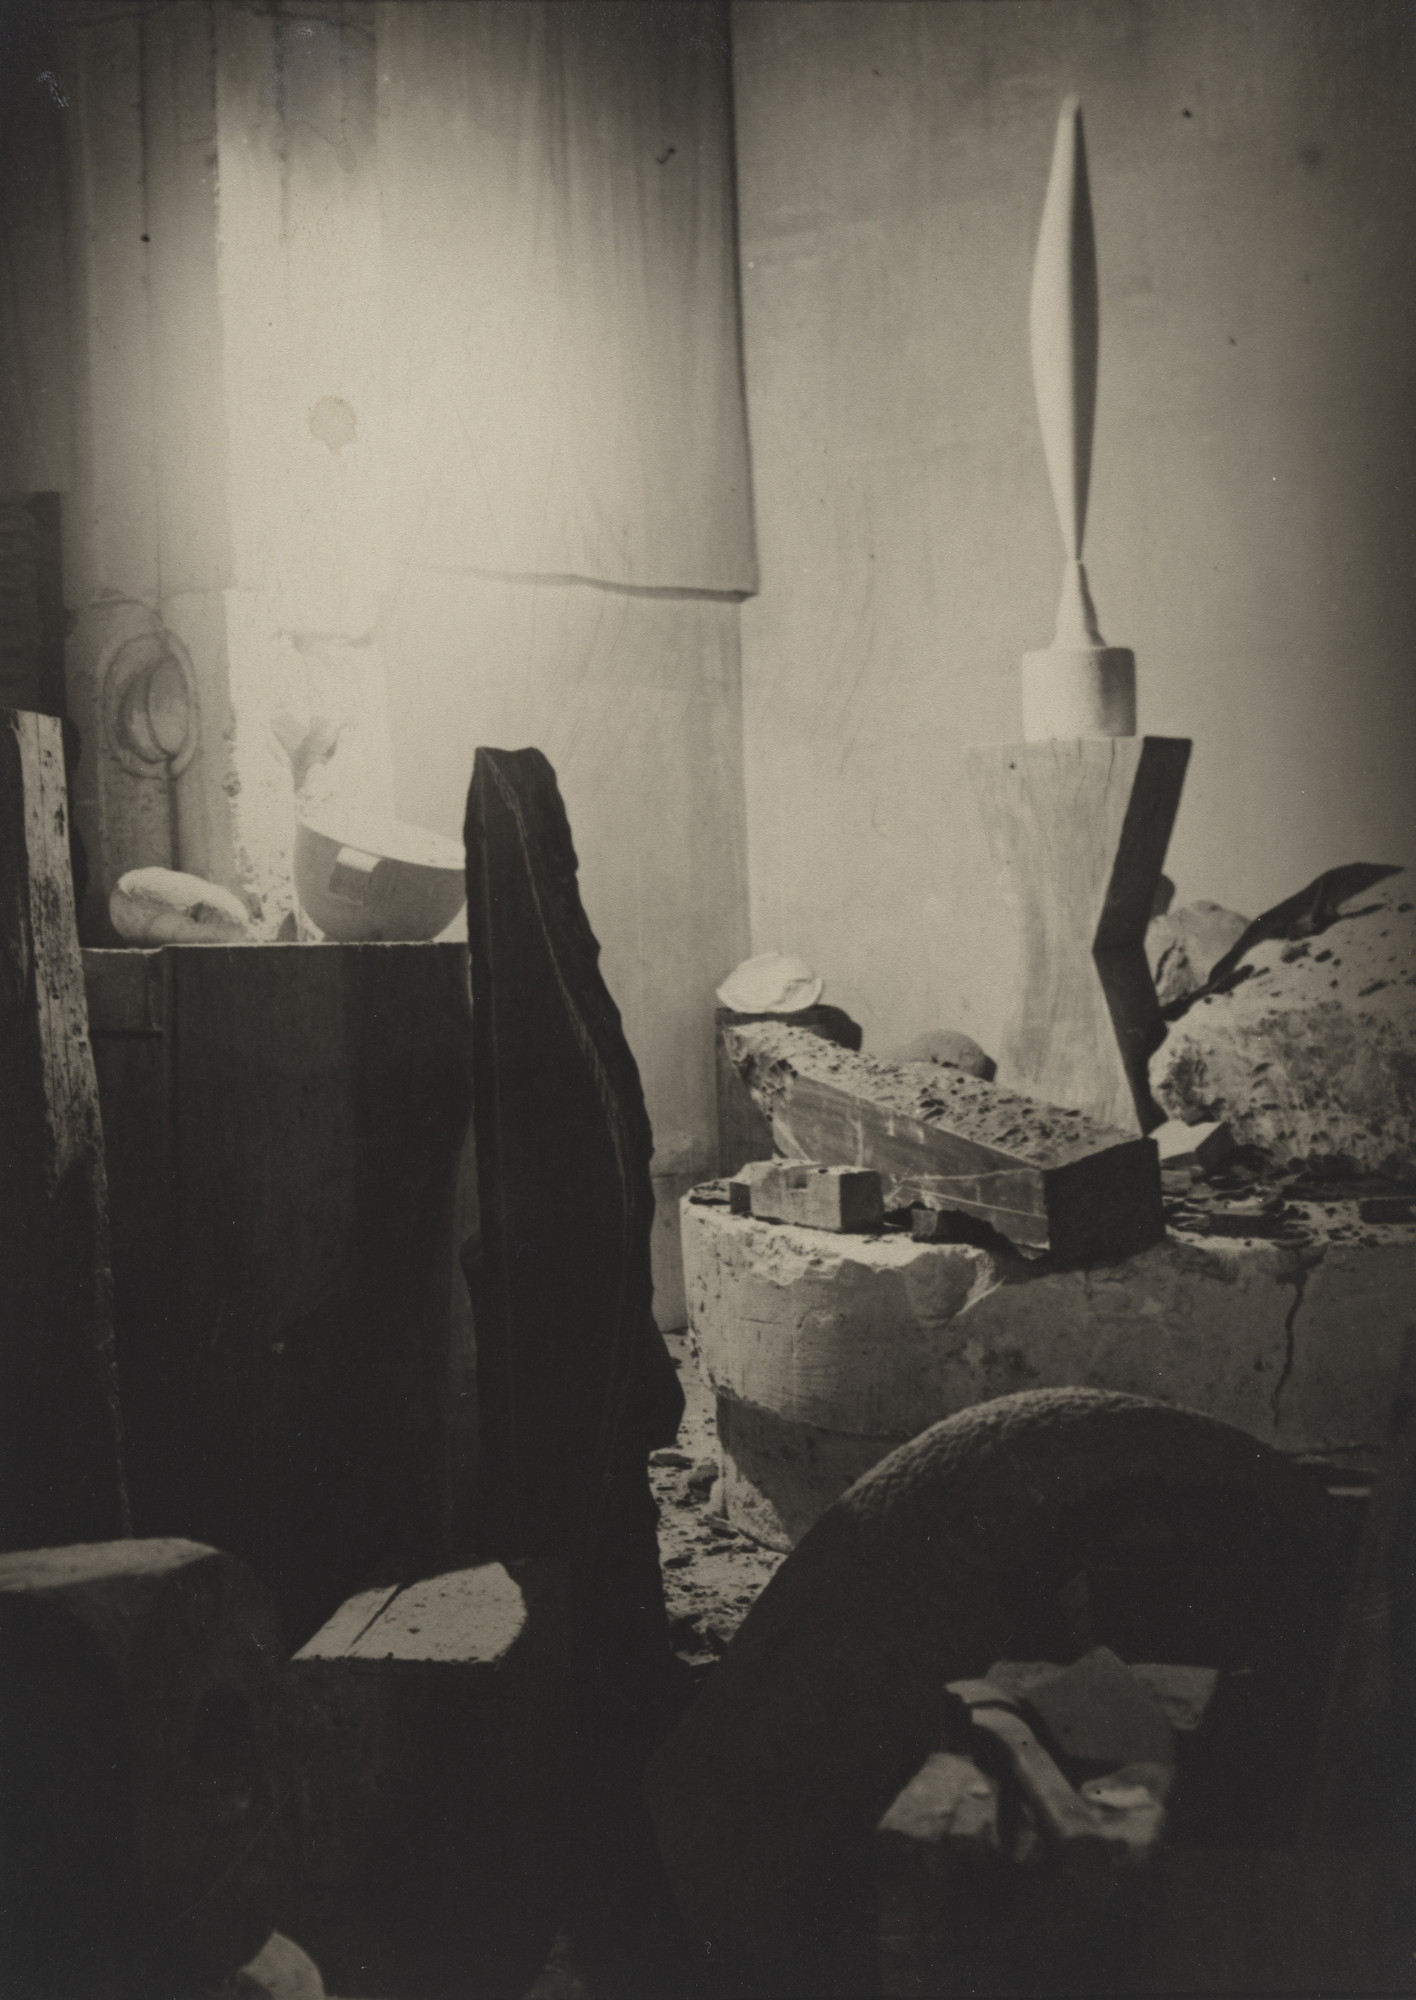 Constantin Brancusi. Untitled (View of the Studio with Bird in Space). 1923